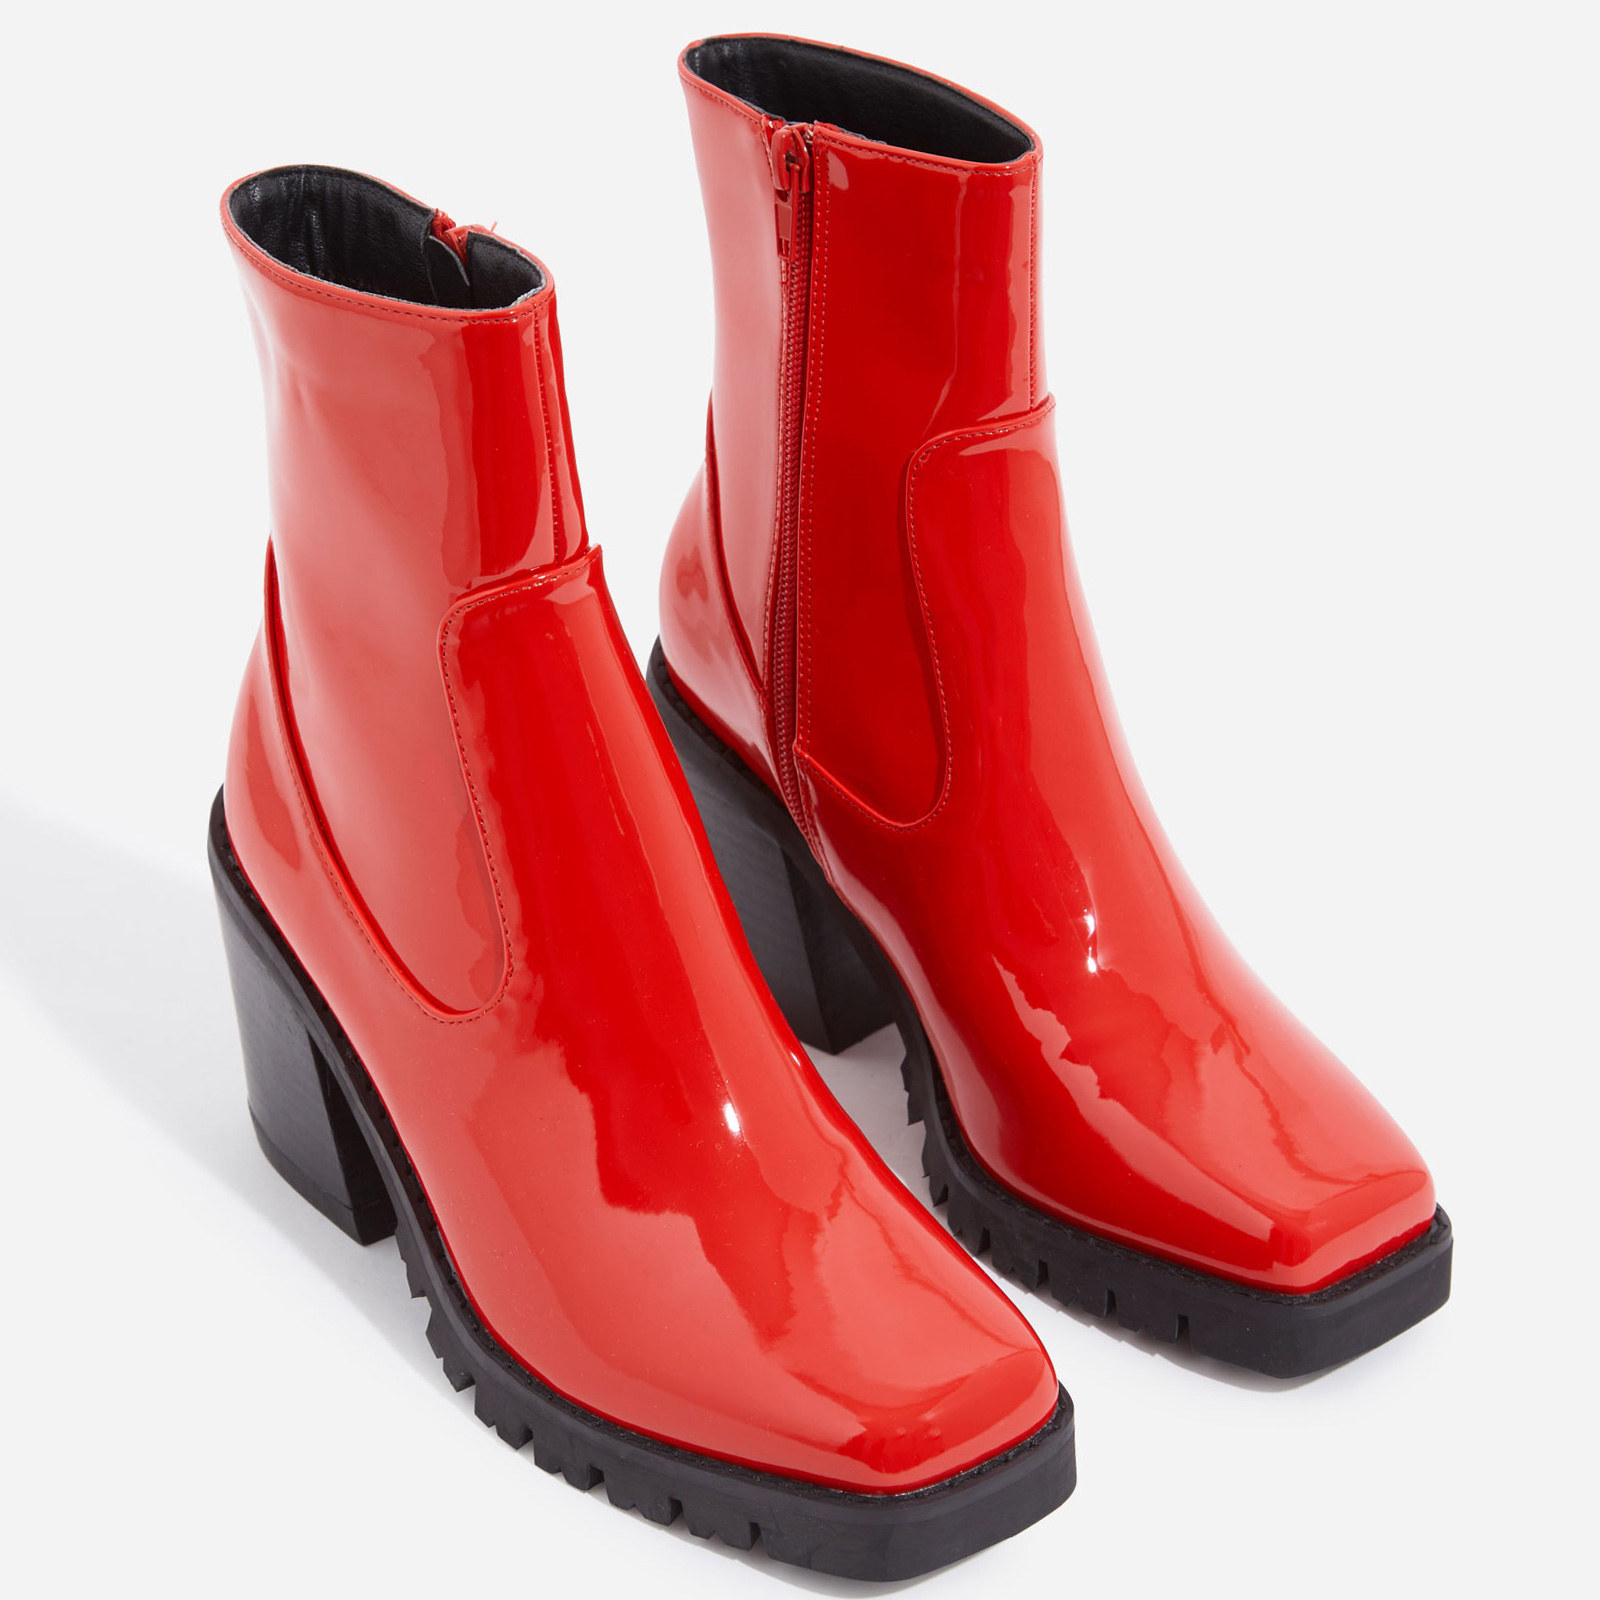 Venza Chunky Sole Western Ankle Boot In Red Patent